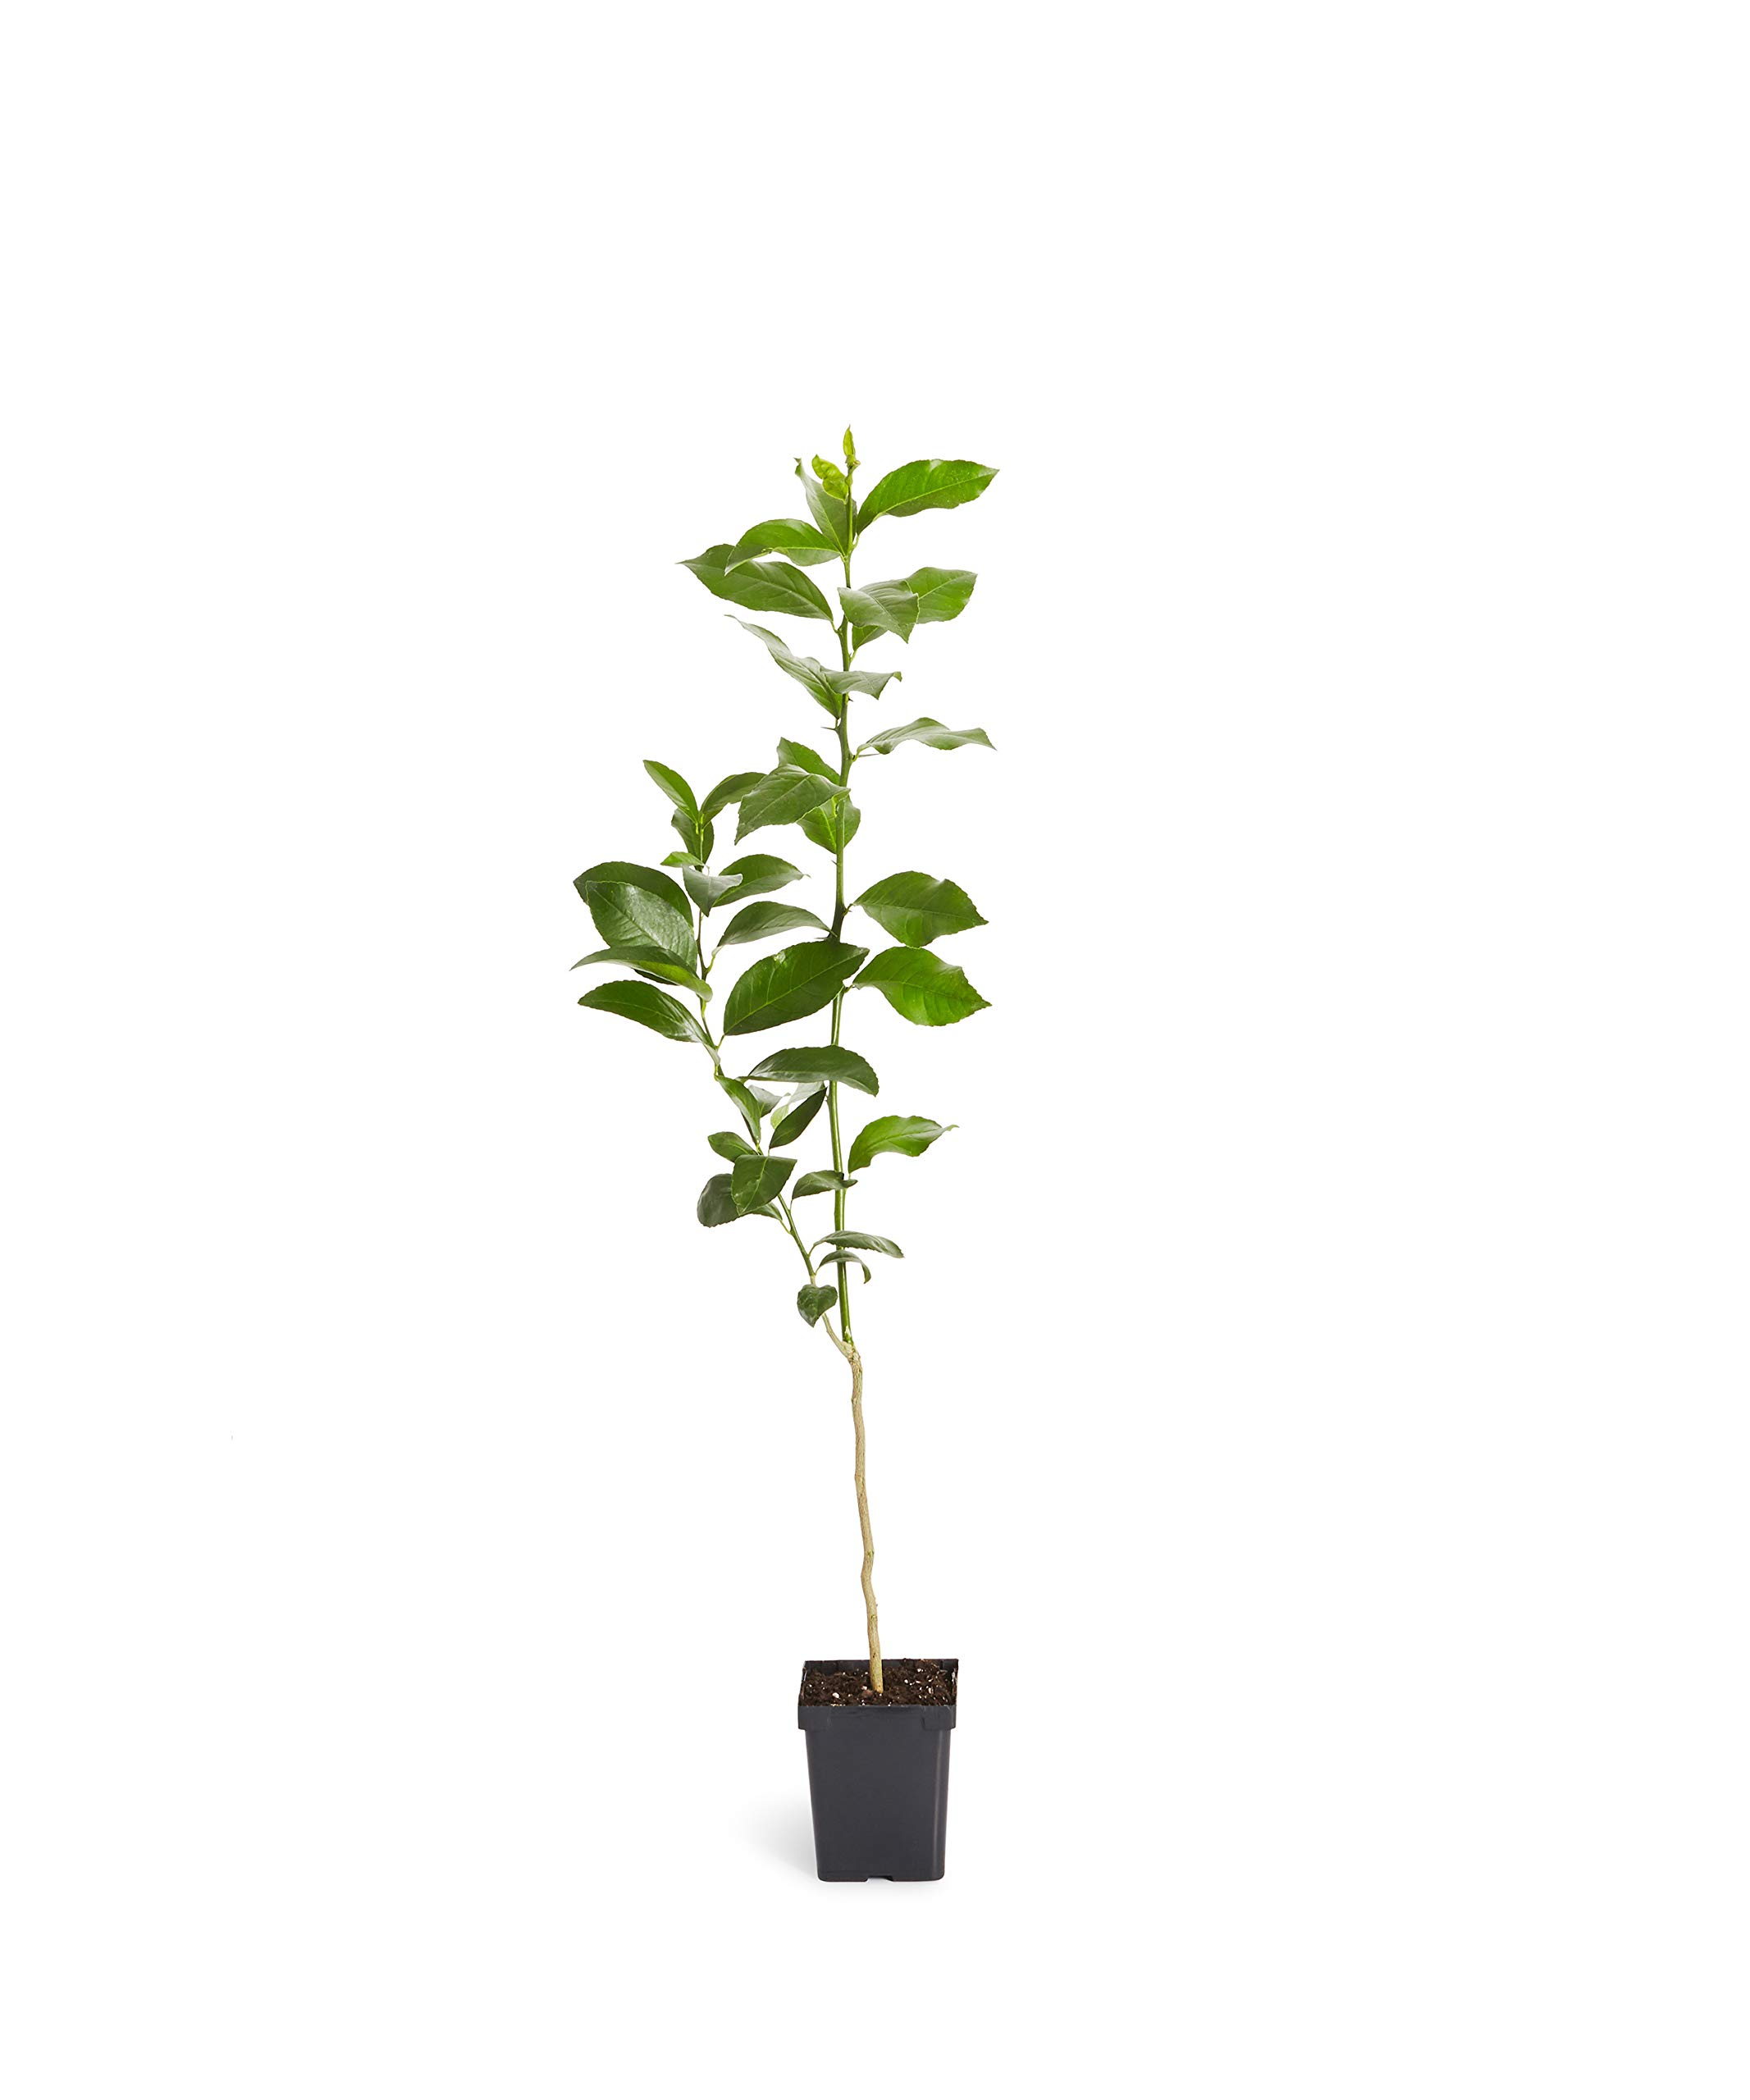 Key Lime Tree - Dwarf Fruit Trees - Indoor/Outdoor Live Potted Citrus Tree - 1-2 ft. Tall Trees - Cannot Ship to FL, CA, TX, LA or AZ by Brighter Blooms